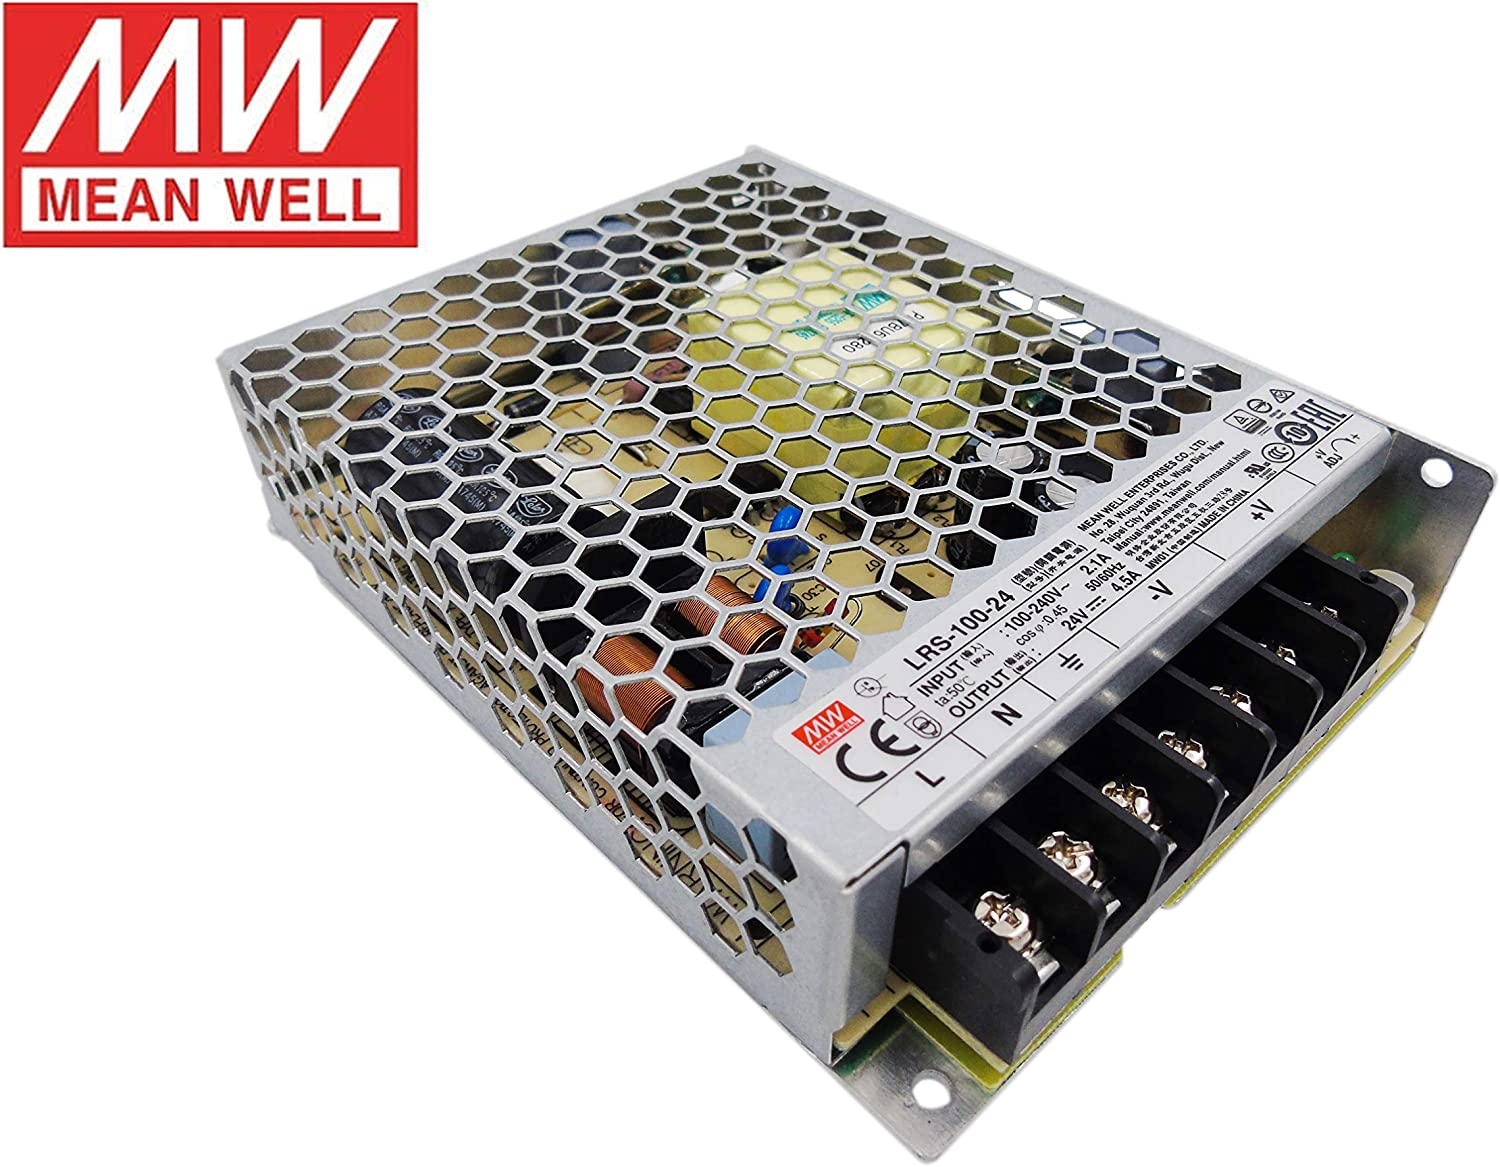 MeanWell Fuente de alimentacion 100W 24V 4.5A Enclosed LRS-100-24 Power Supply AC/DC